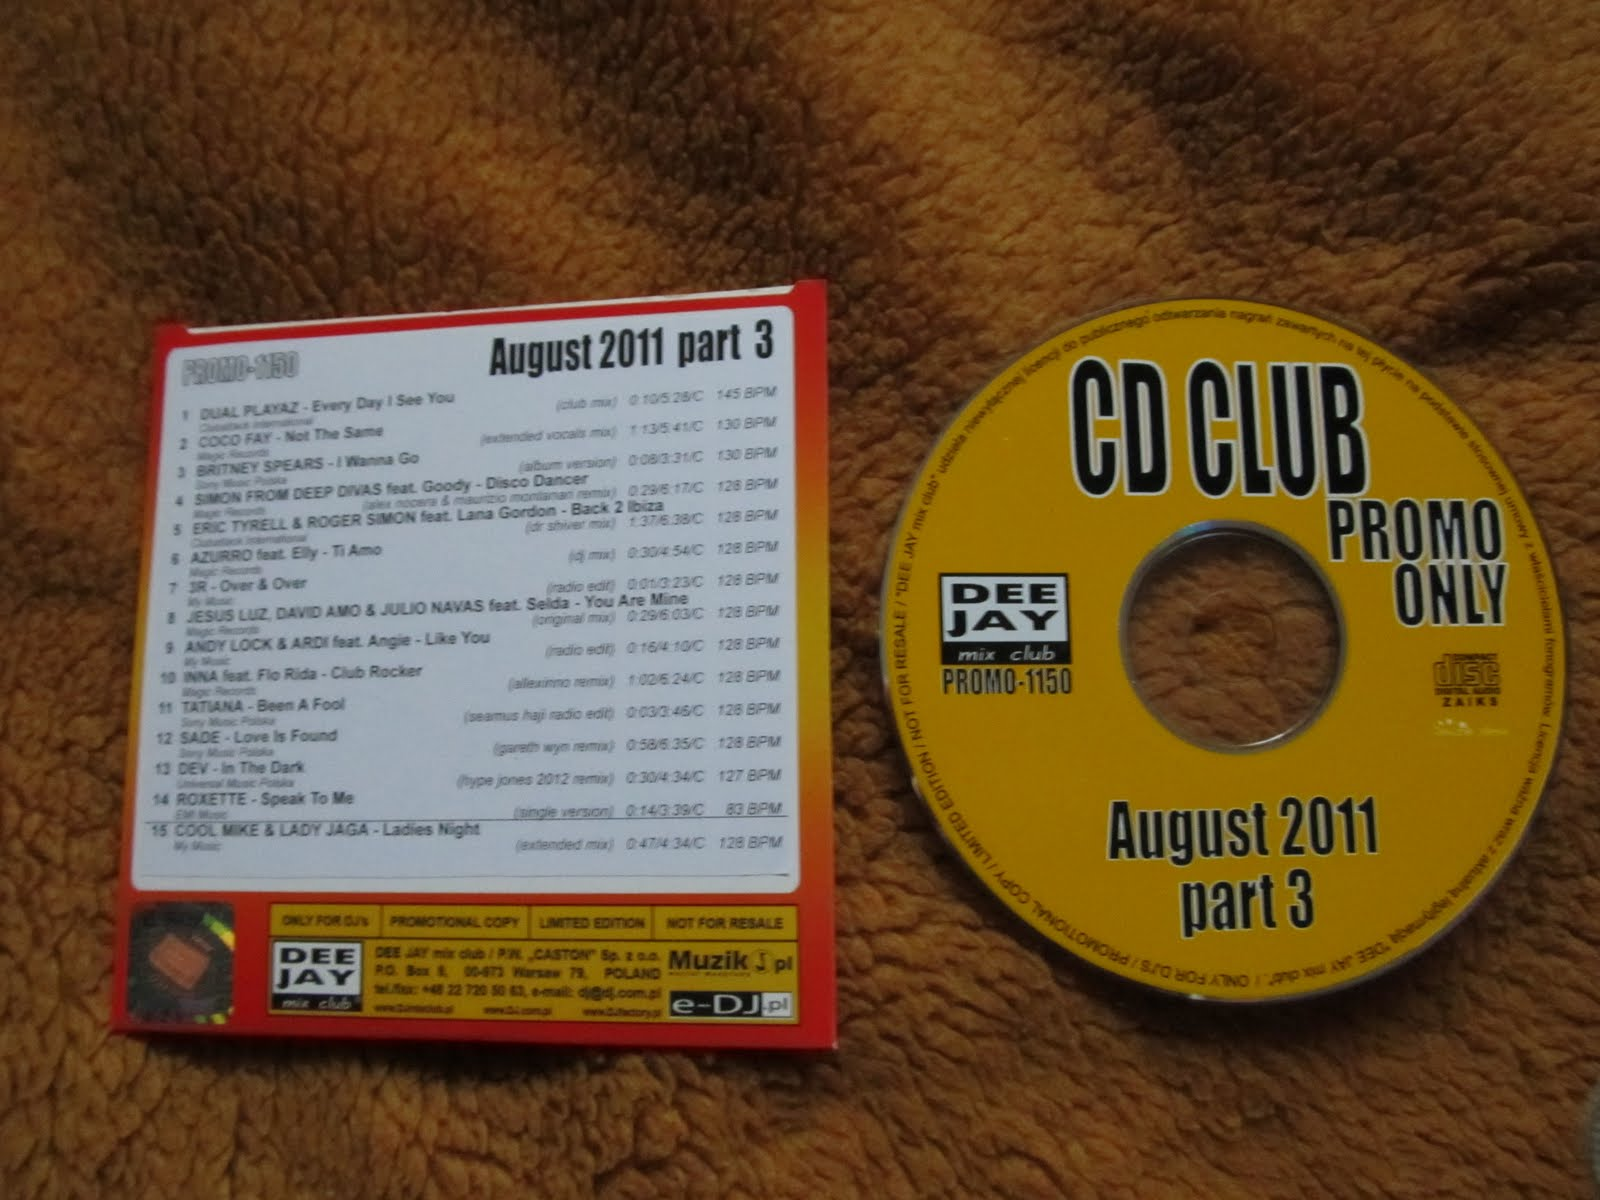 http://1.bp.blogspot.com/-PMgzjmKLGZ8/Tjrh7_exjhI/AAAAAAAALGc/HHt5lMp84bw/s1600/00-va-cd_club_promo_only_august_part_3-2011-cover.jpg